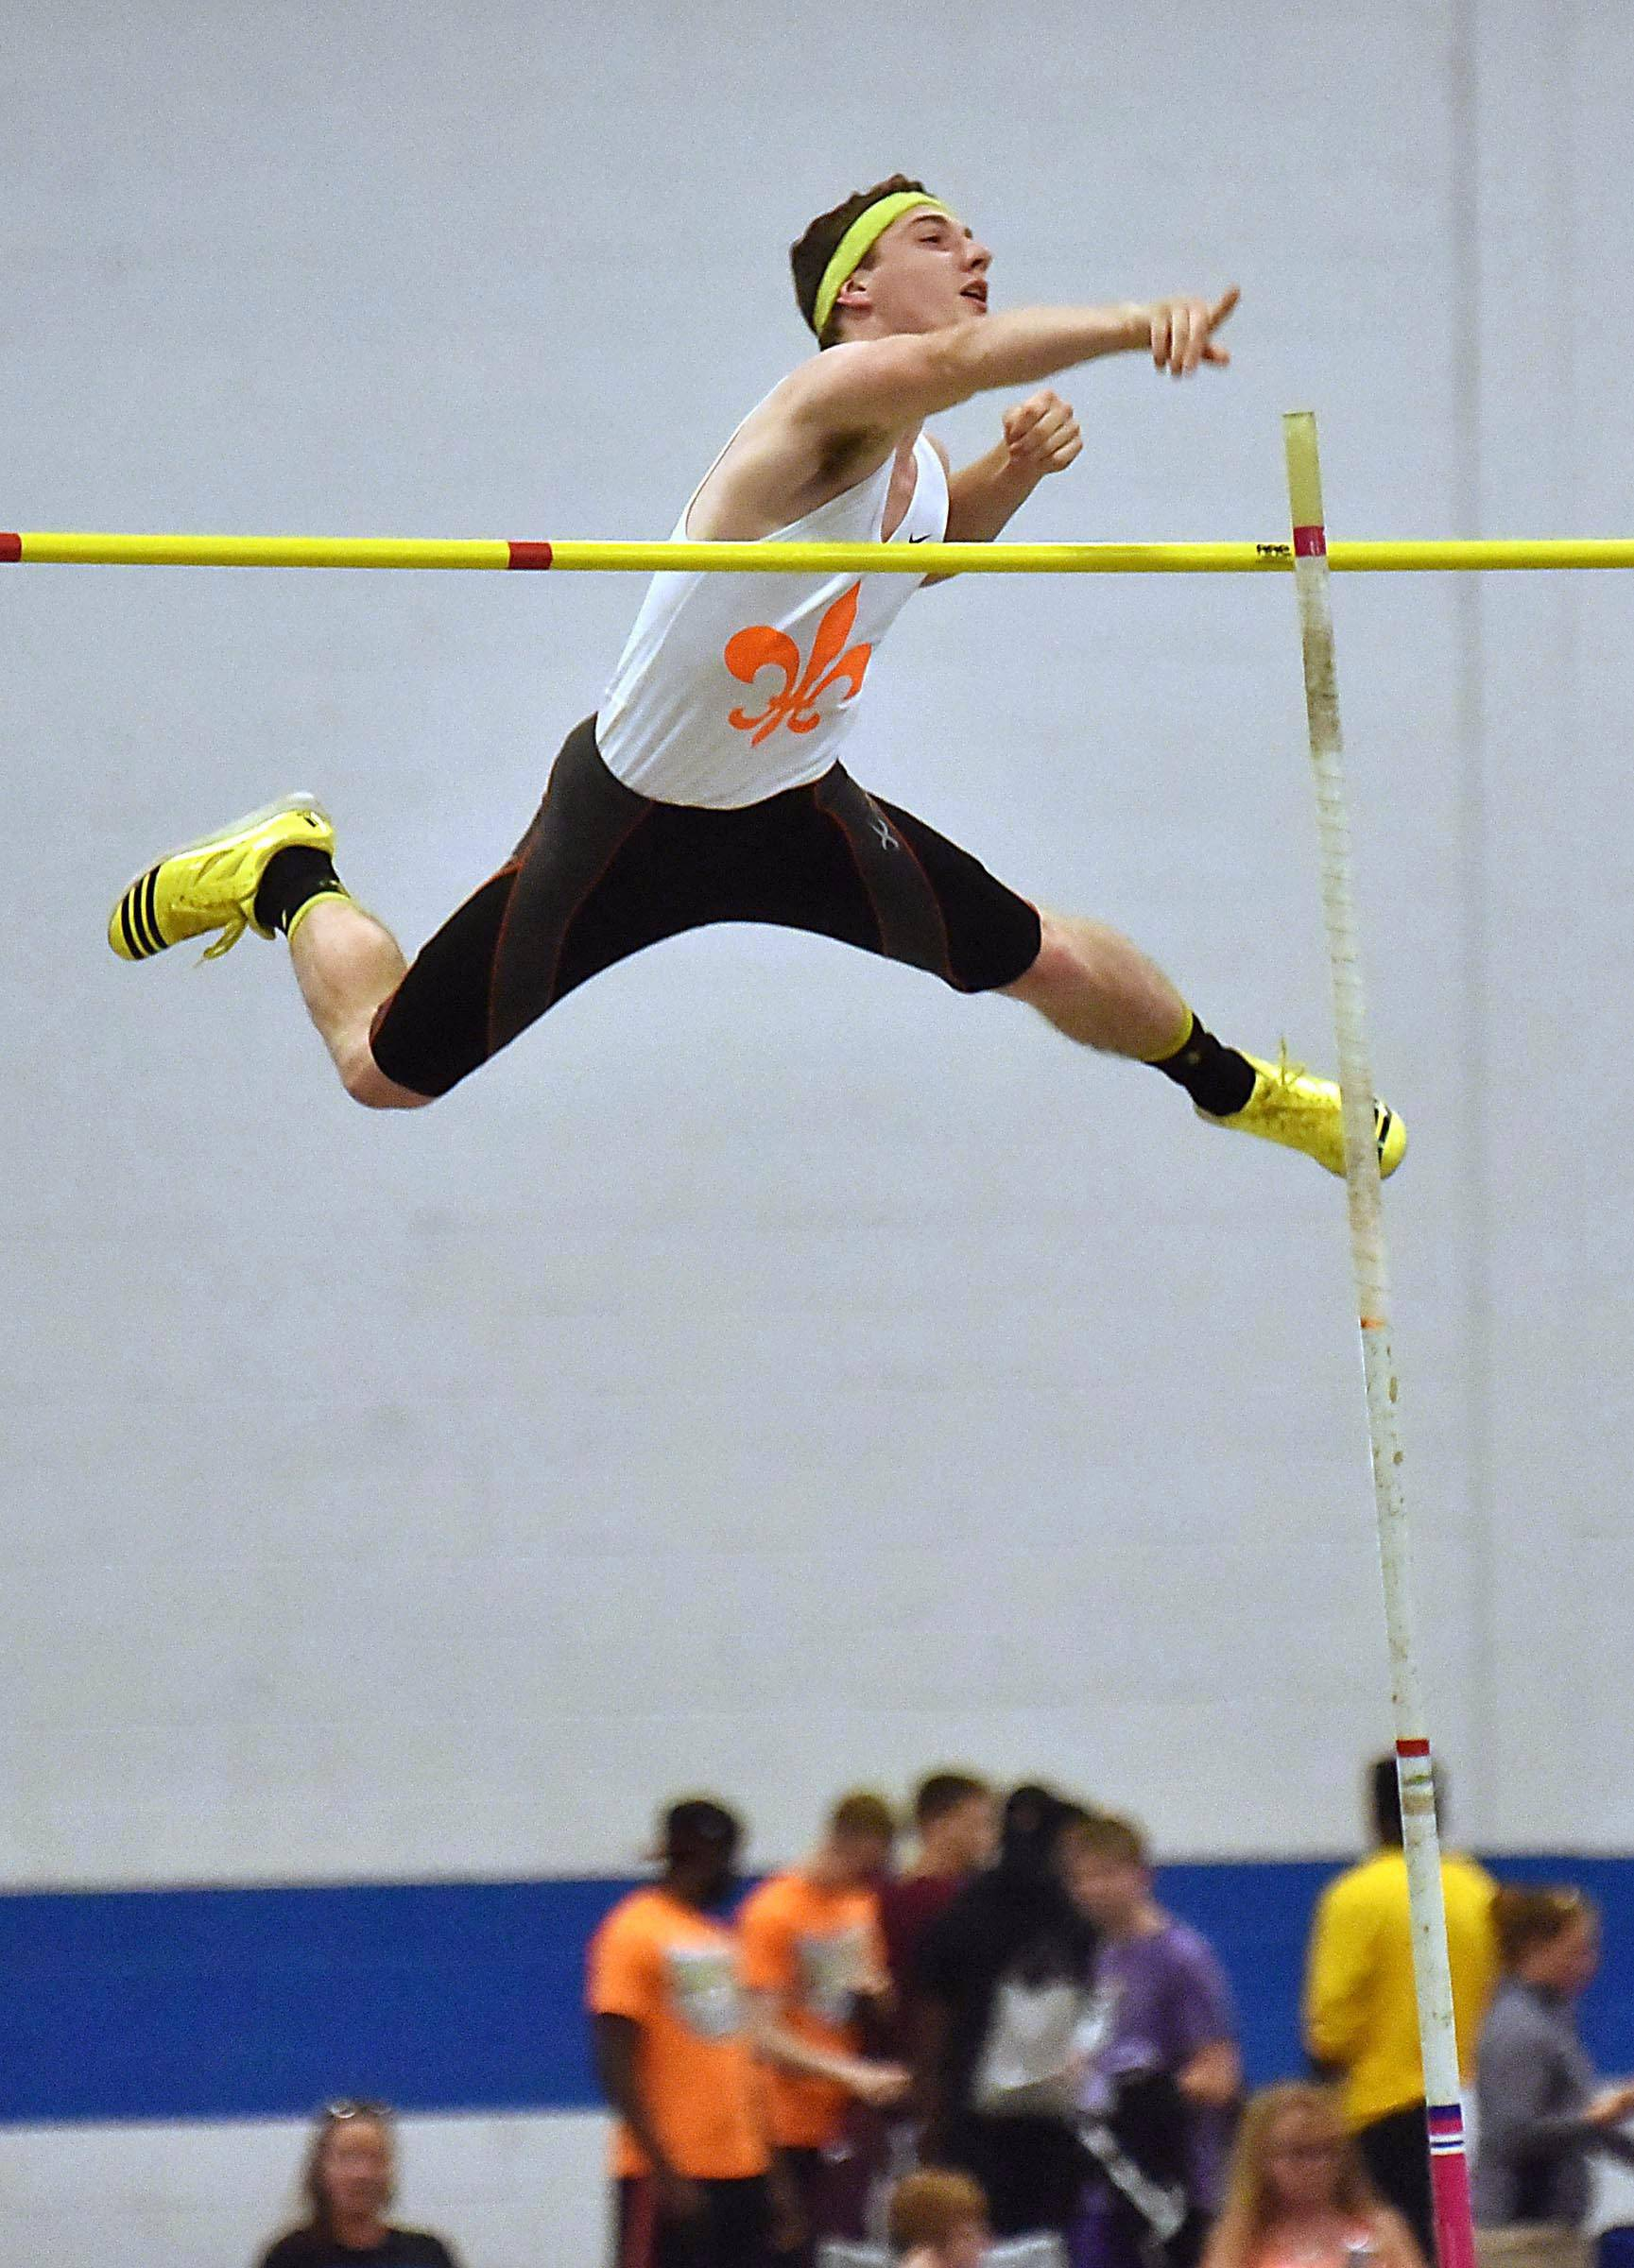 St. Charles East's Colton Weber clears the 13 foot 6 inch bar in the pole vault Friday at the boys track state finals prelim events at Eastern Illinois University in Charleston.